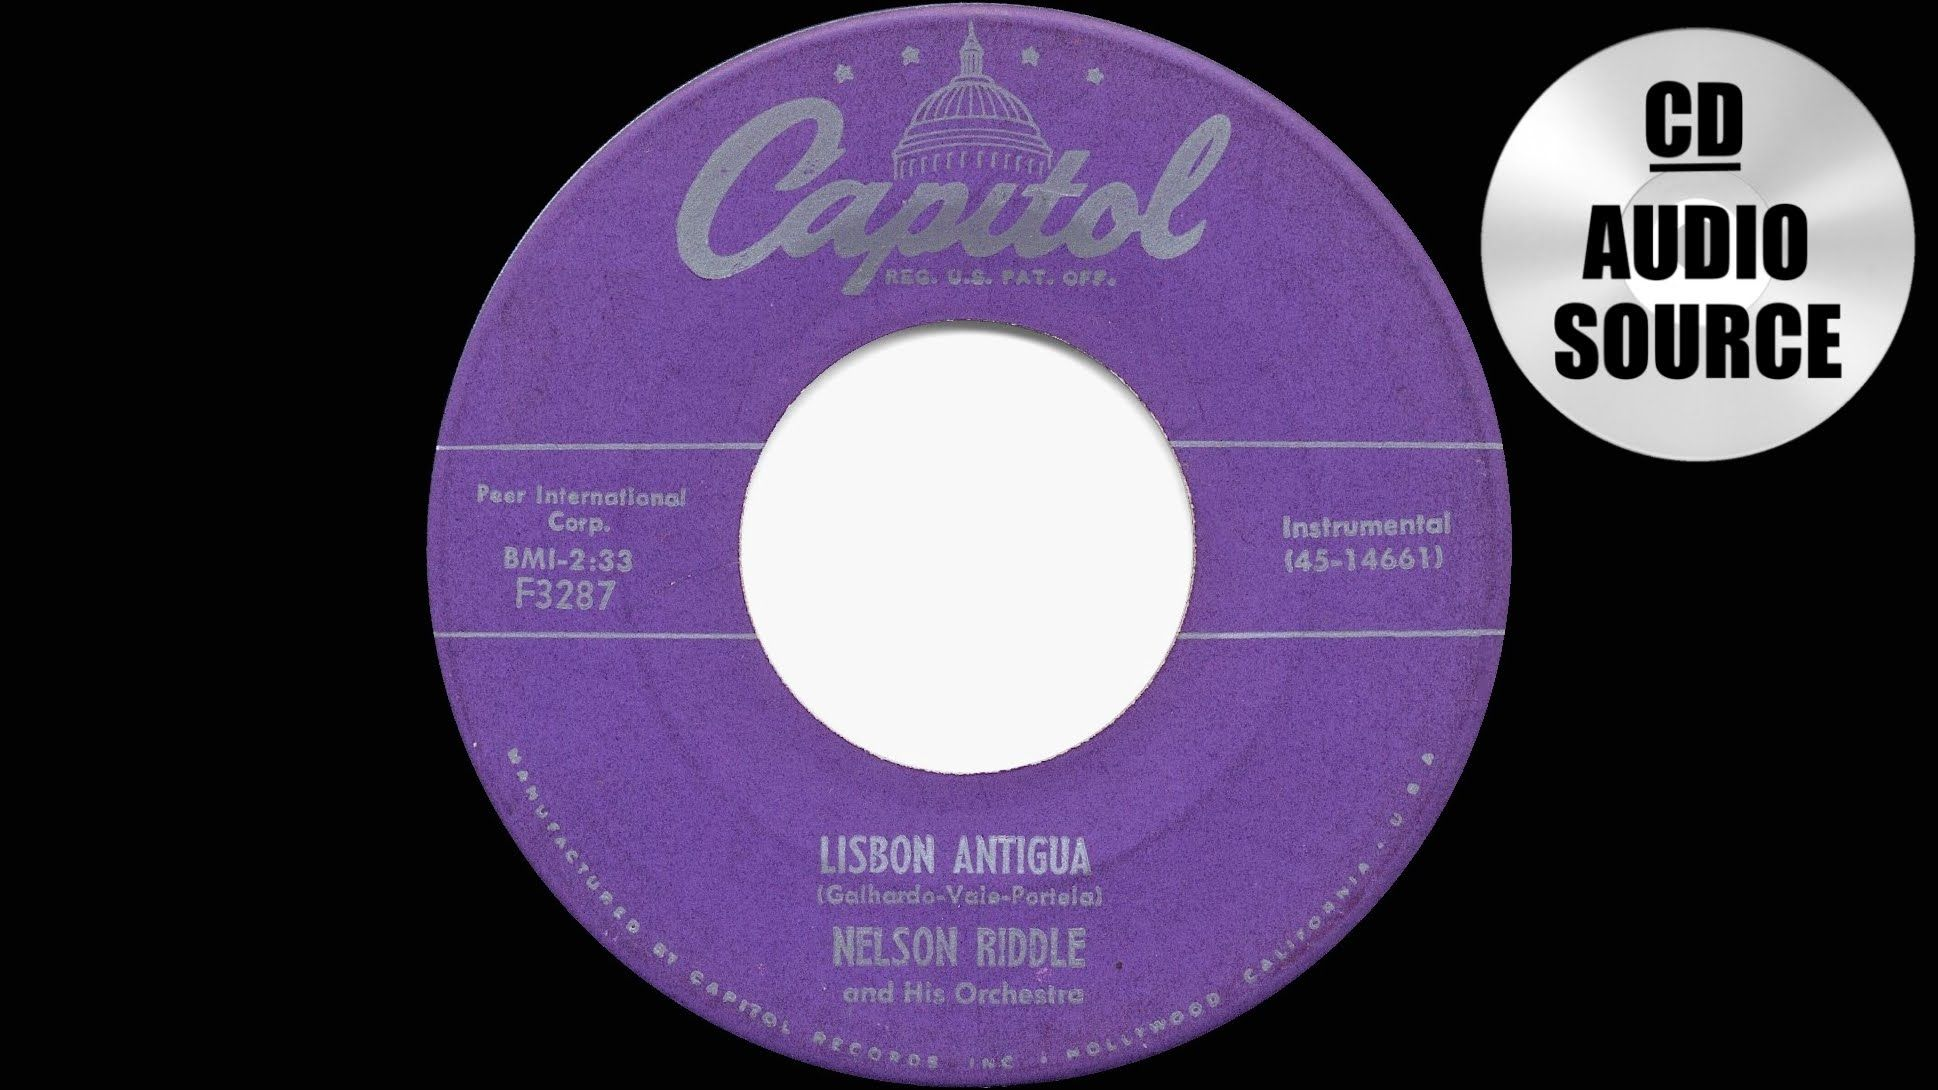 Lisbon Antigua, Nelson Riddle Orchestra, 1956 Uncle Tony